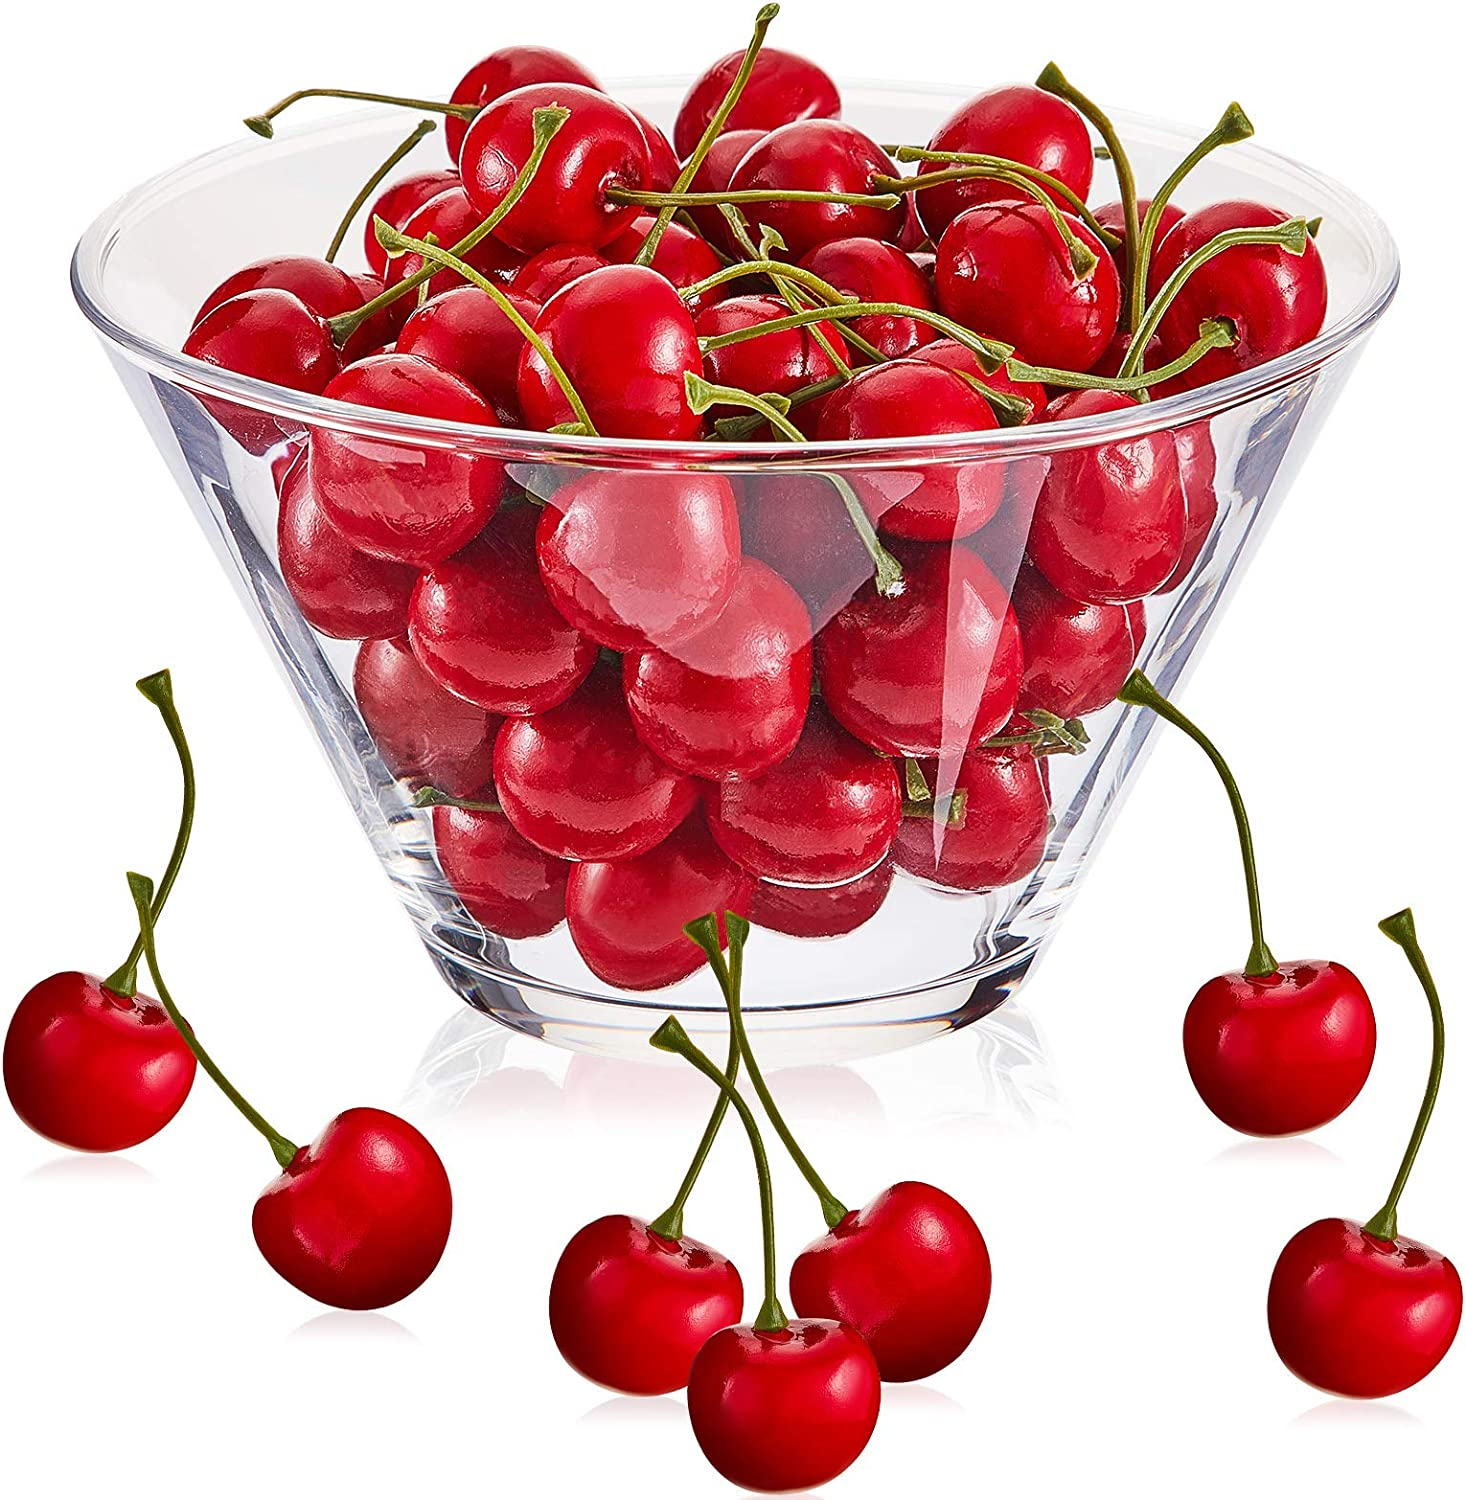 80 Pieces Artificial Lifelike Simulation Cherries Decorative Fruit Cherries Fake Fruit Cherries Fake Fruit Model for Party Decor Home Kitchen Cabinet Decoration Photography Prop Cognitive Toy, Red